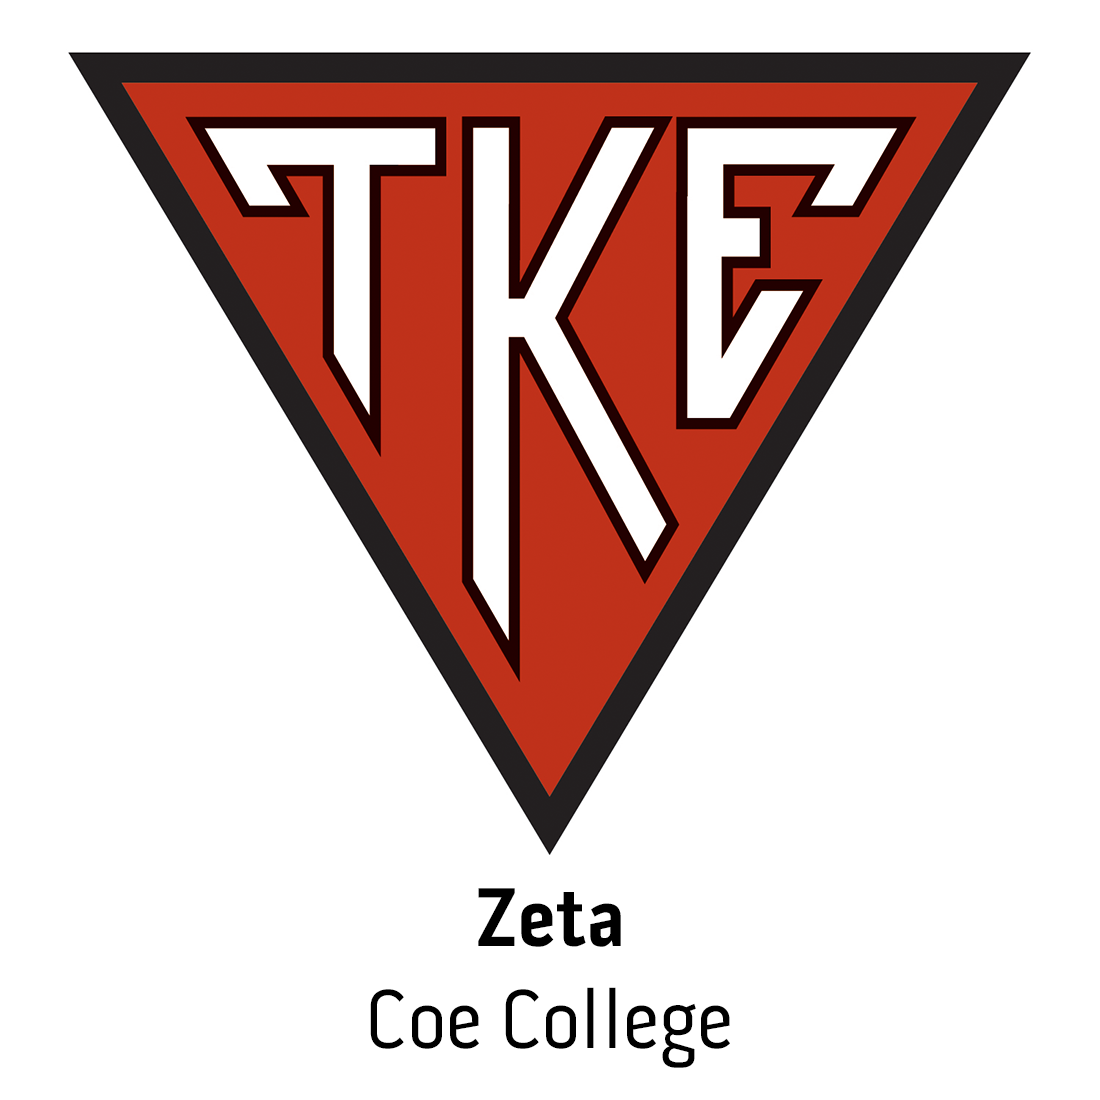 Zeta Chapter at Coe College